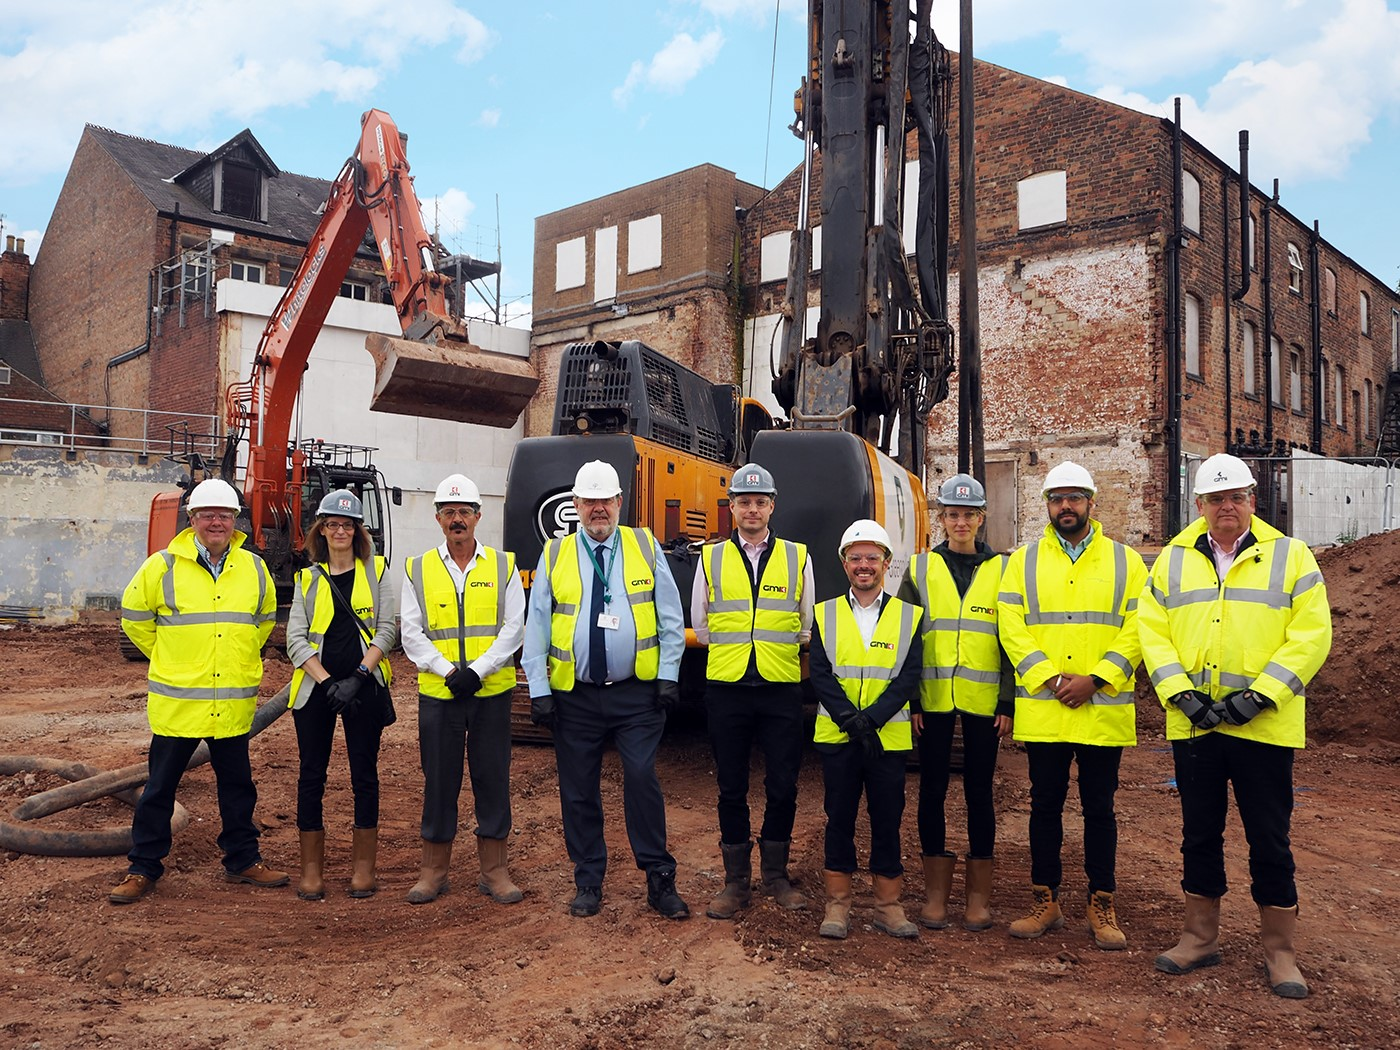 WORK COMMENCES ON PHASE ONE OF £200 MILLION BECKETWELL SCHEME